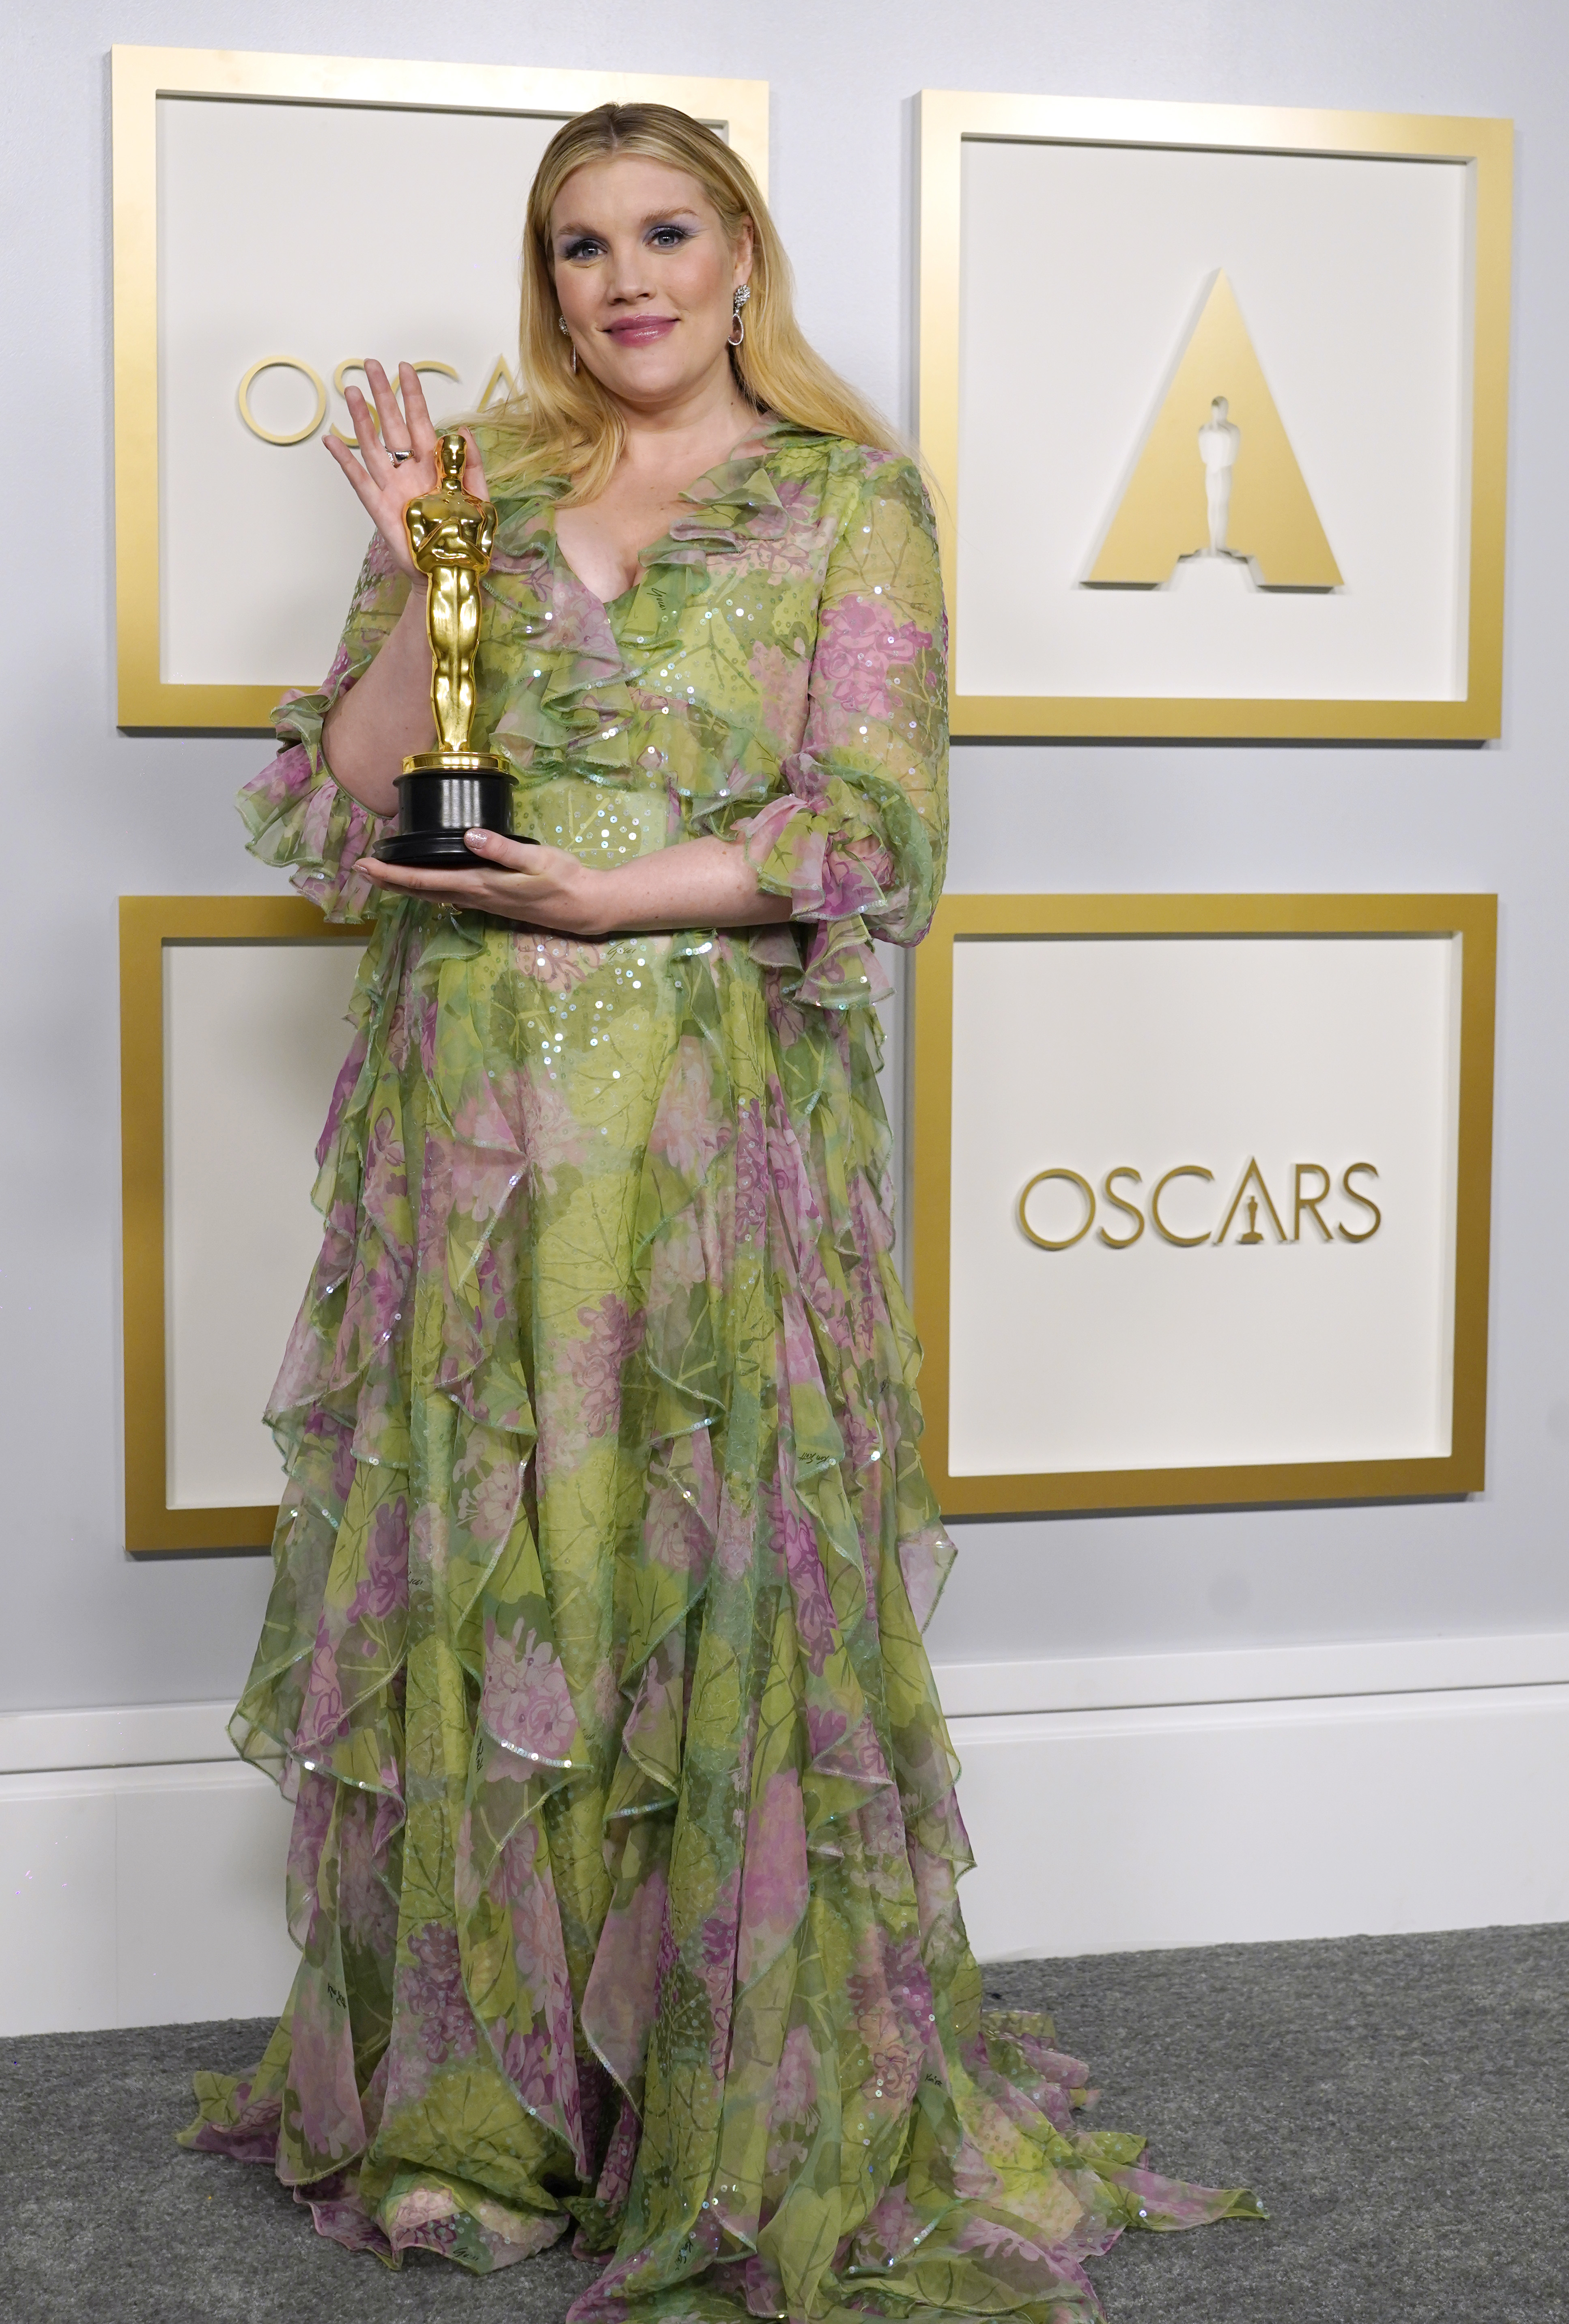 Emerald Fennell at an event for The 93rd Oscars (2021)